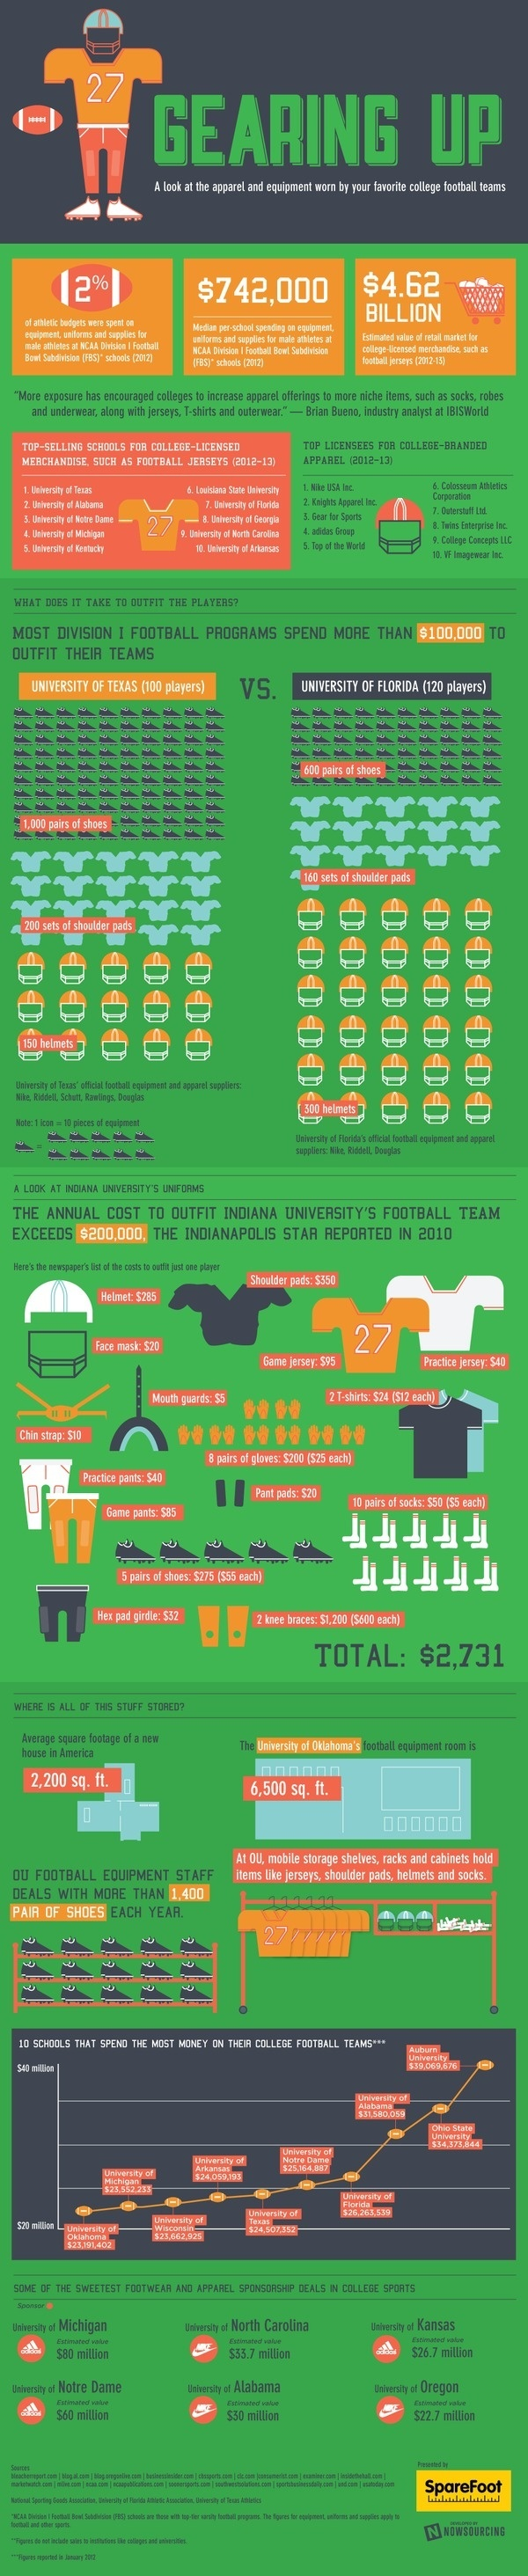 college football equipment #apparel #infographic #equipment #college #gear #sports #football #money